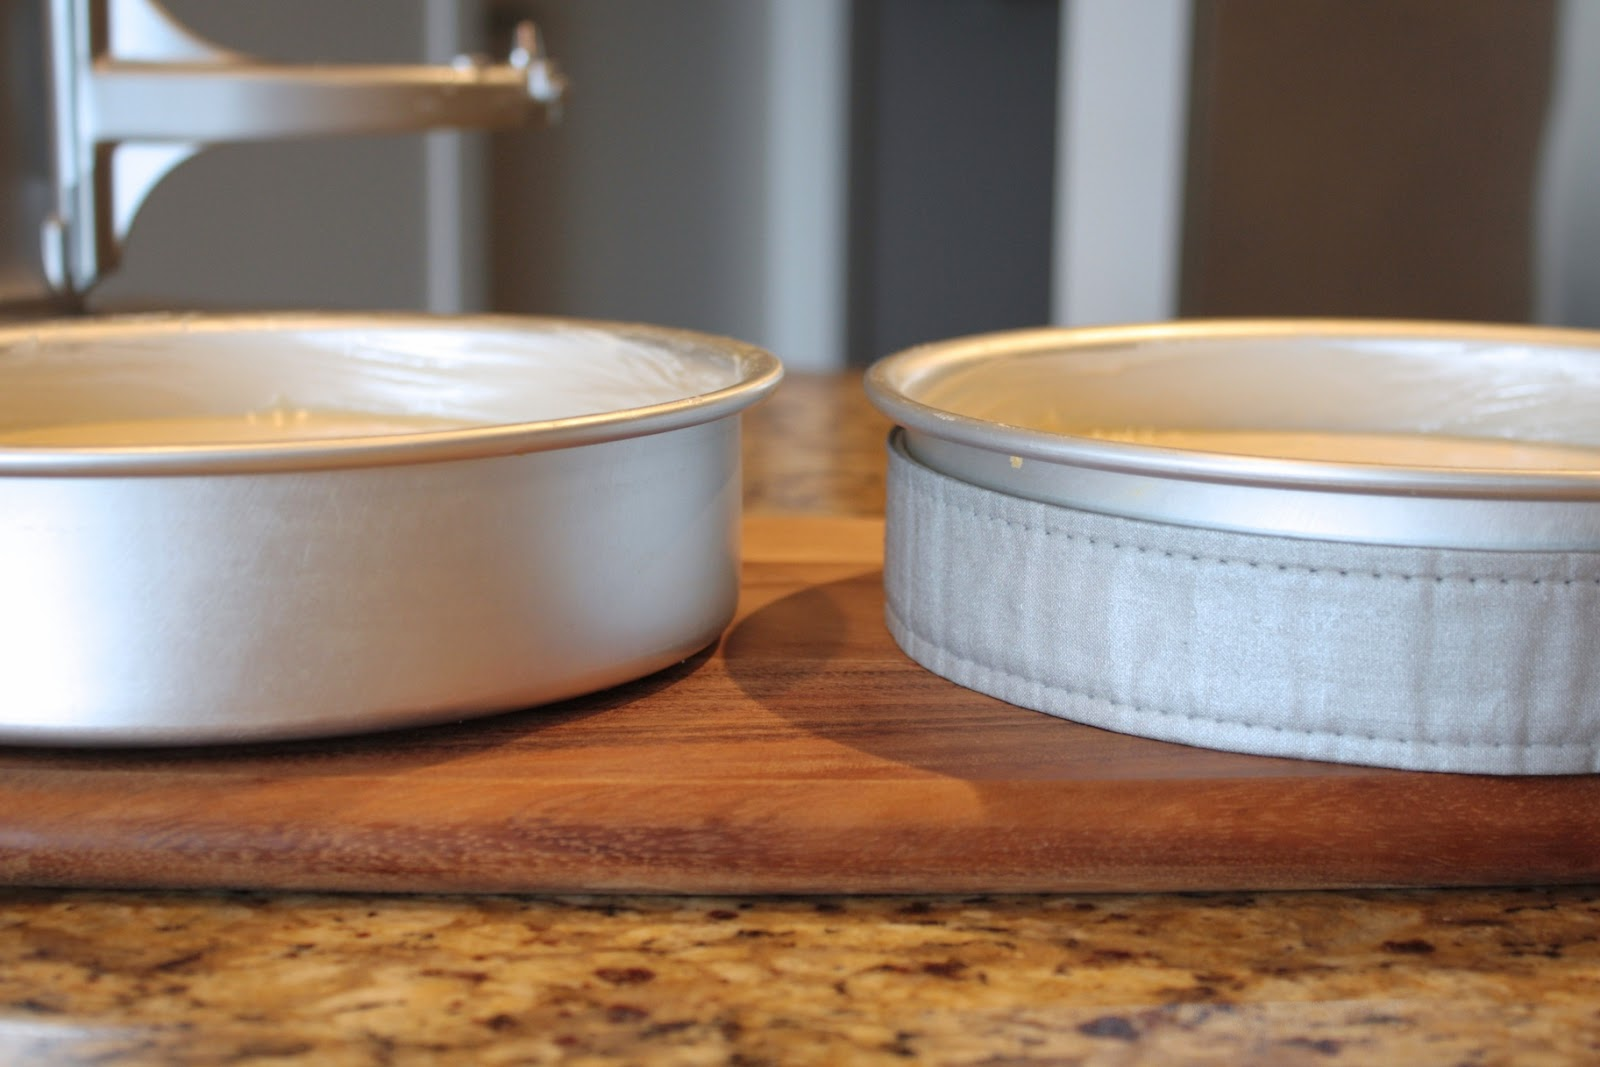 Side by side shot of cake pans, one with evenbake strip